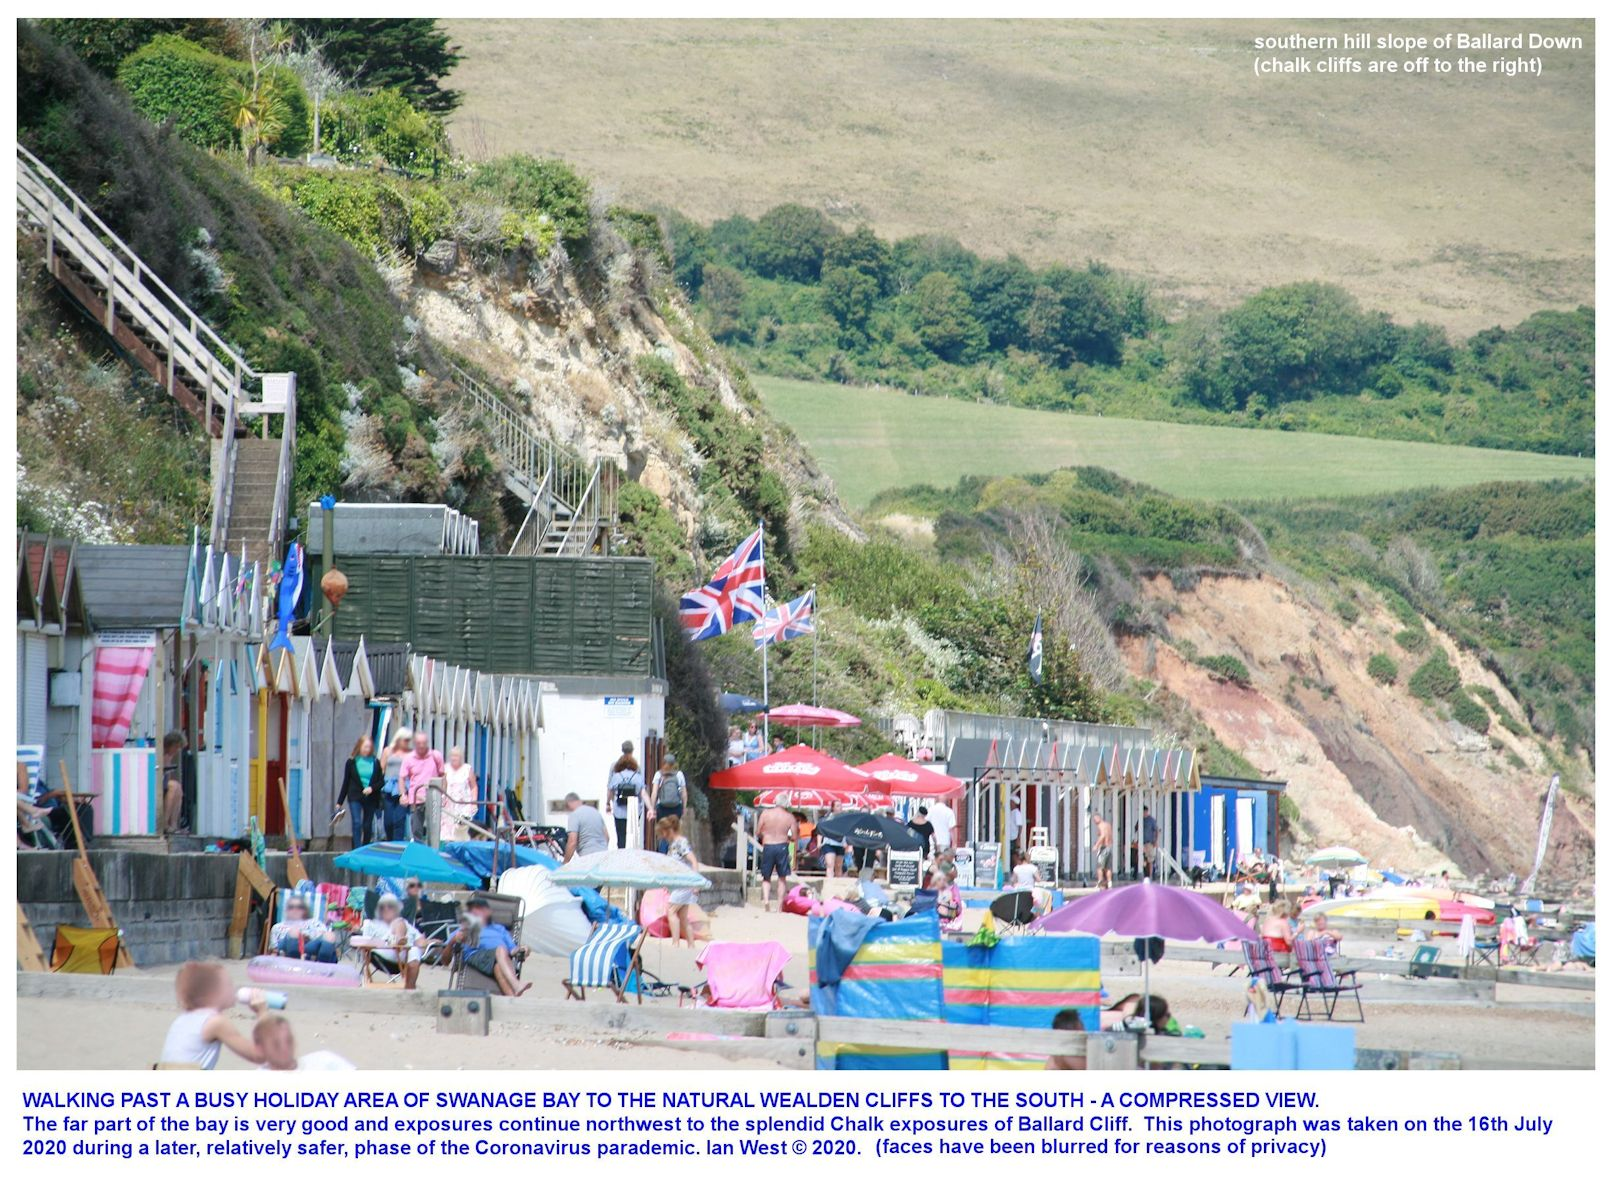 Holiday crowds on the beach at the Wealden cliffs, in the northern part of Swanage Bay